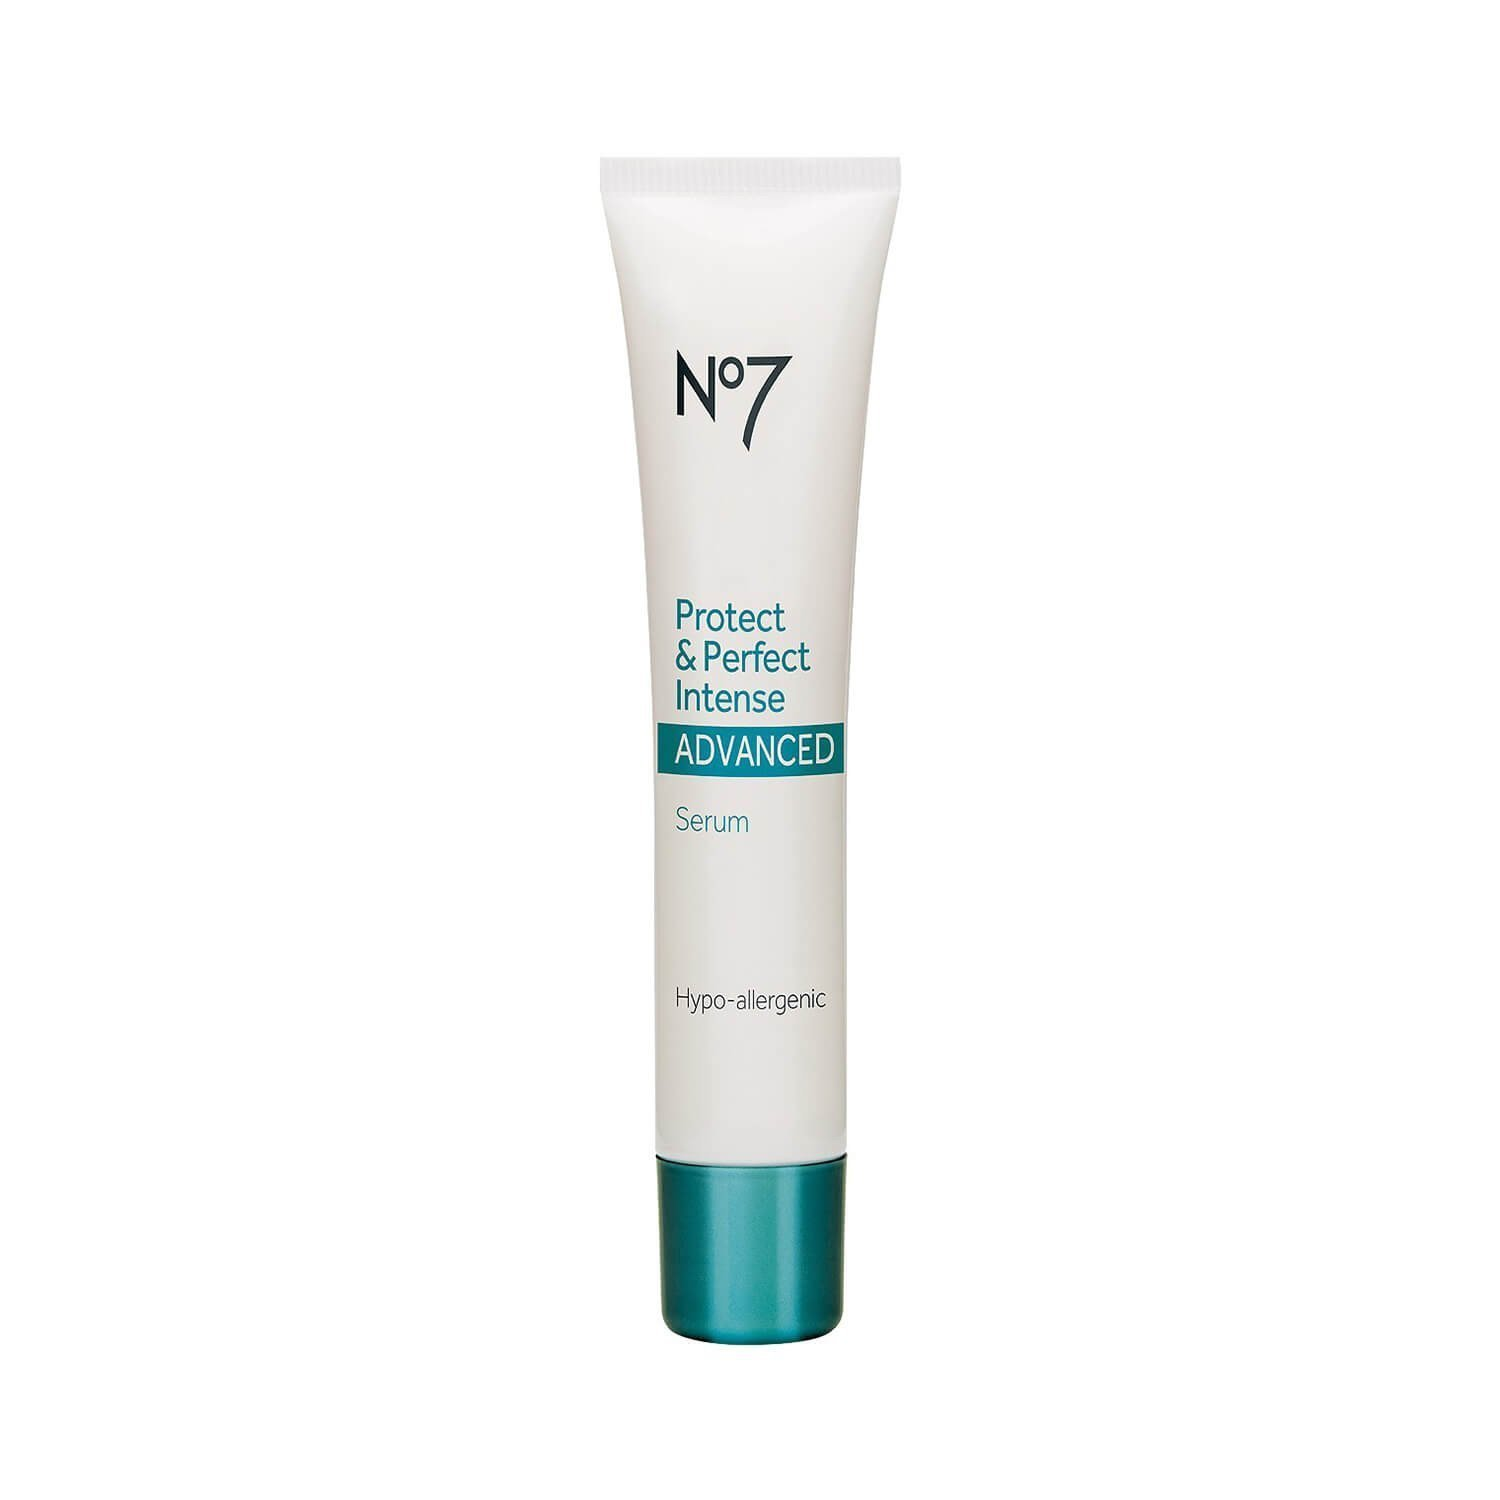 No7 Protect & Perfect Intense ADVANCED Serum 30ml (Unboxed) Boots